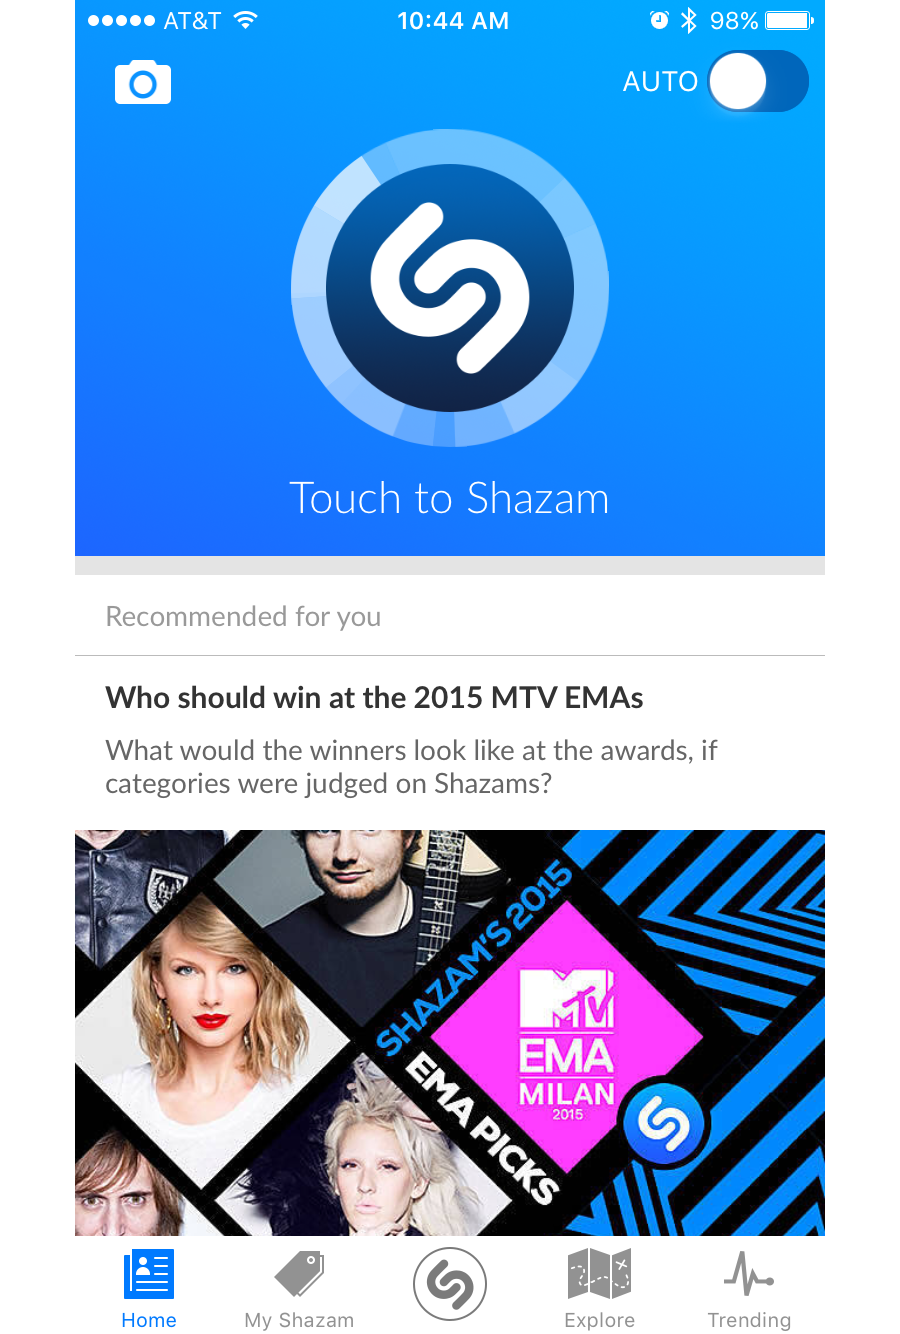 "Evernote (left) nudges the user to try its premium features. Shazam (right) allocates almost half of the screen to highlight the key user action ""Touch to Shazam""."